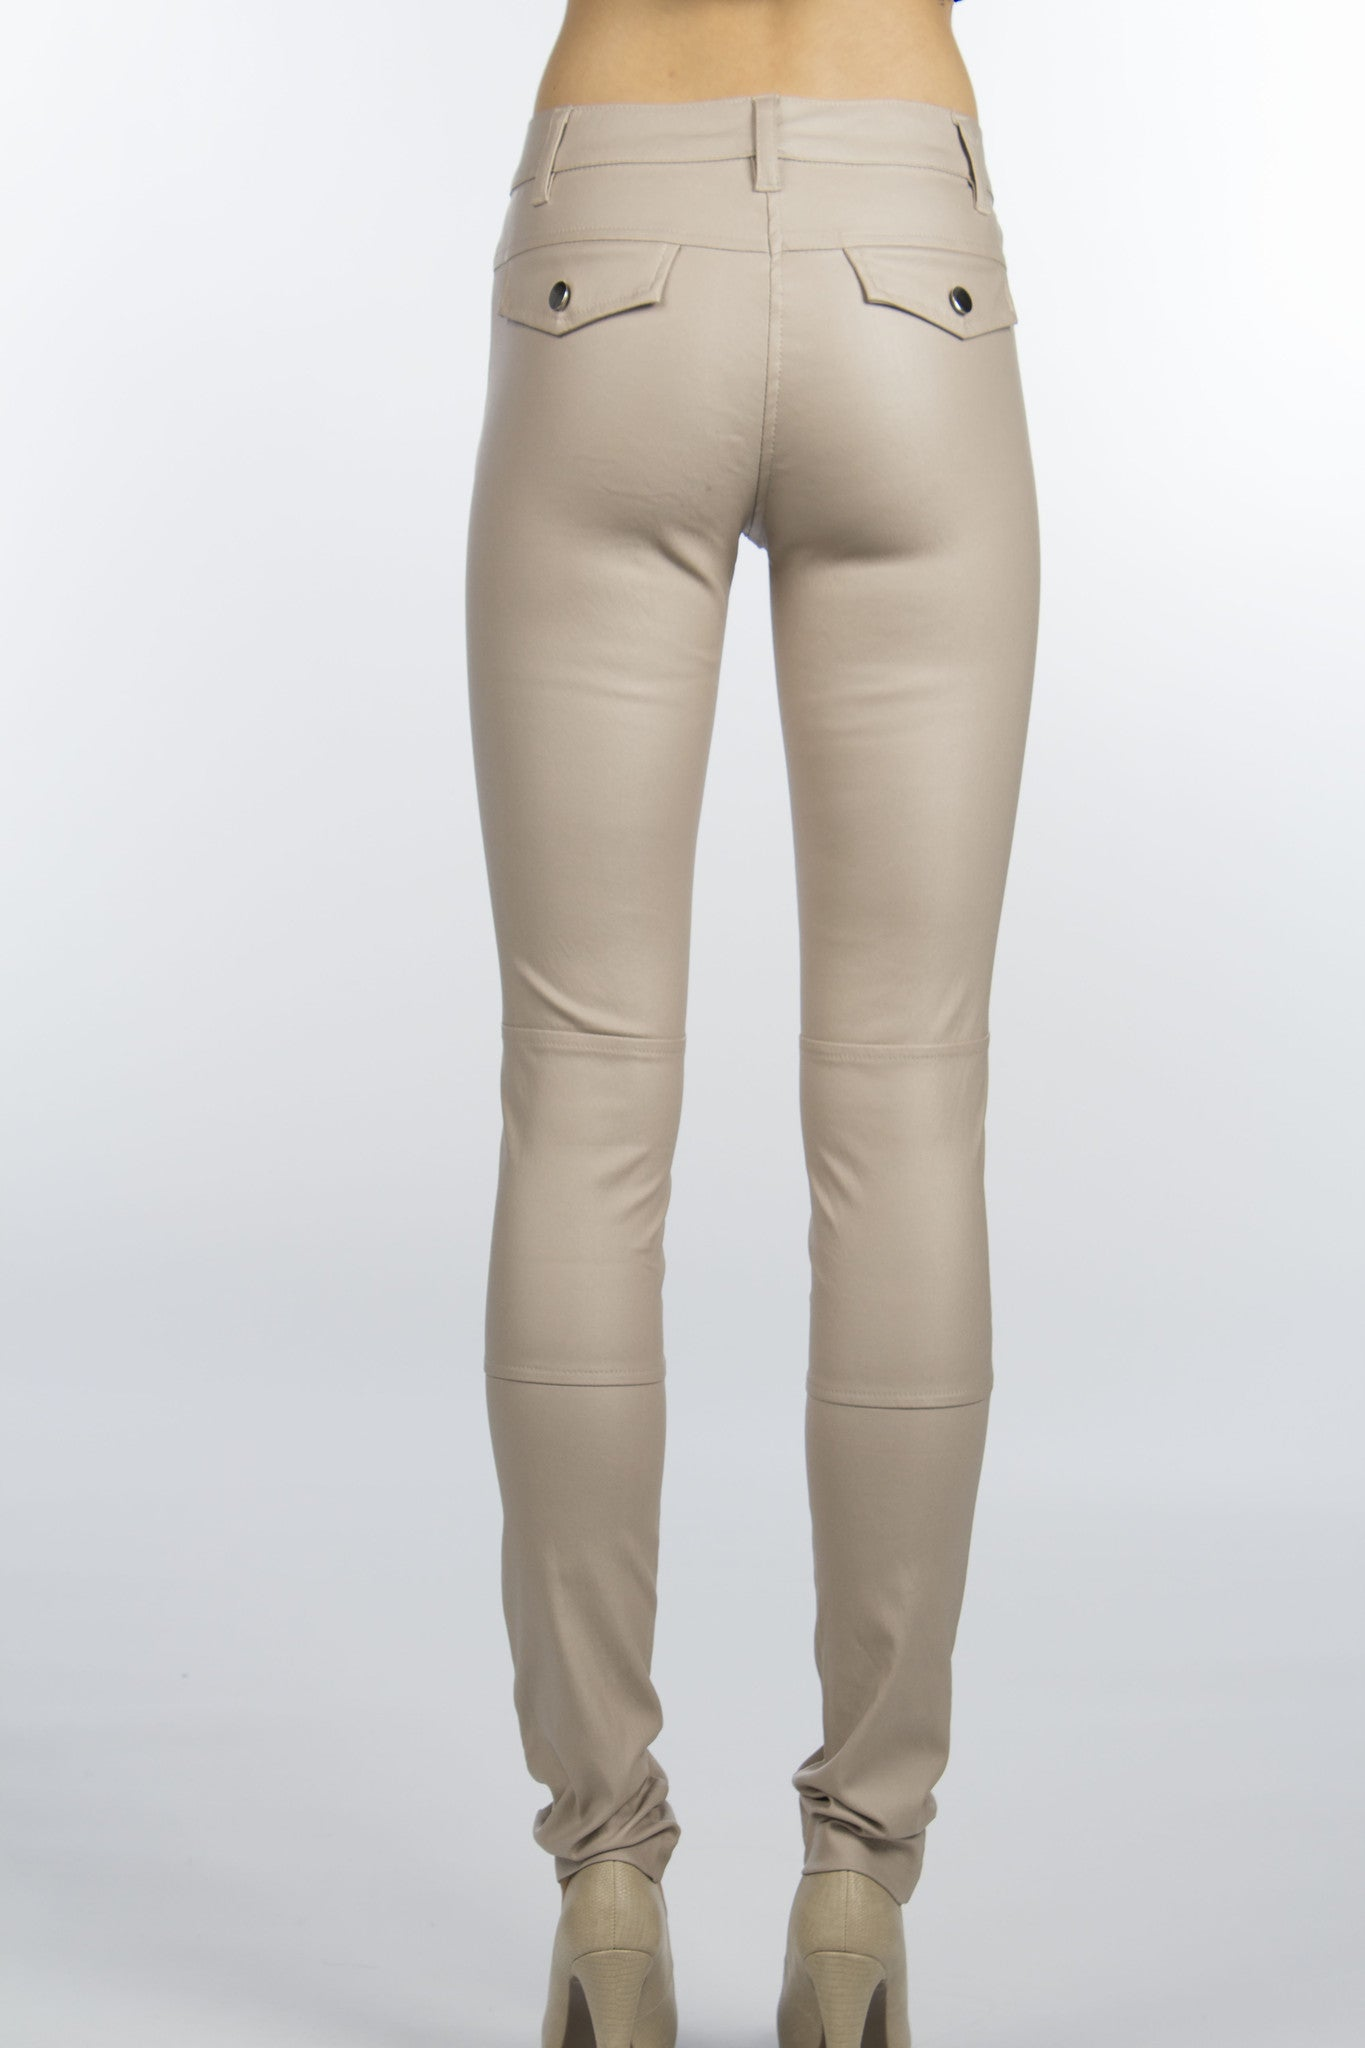 beige skinny pants with back flap pockets